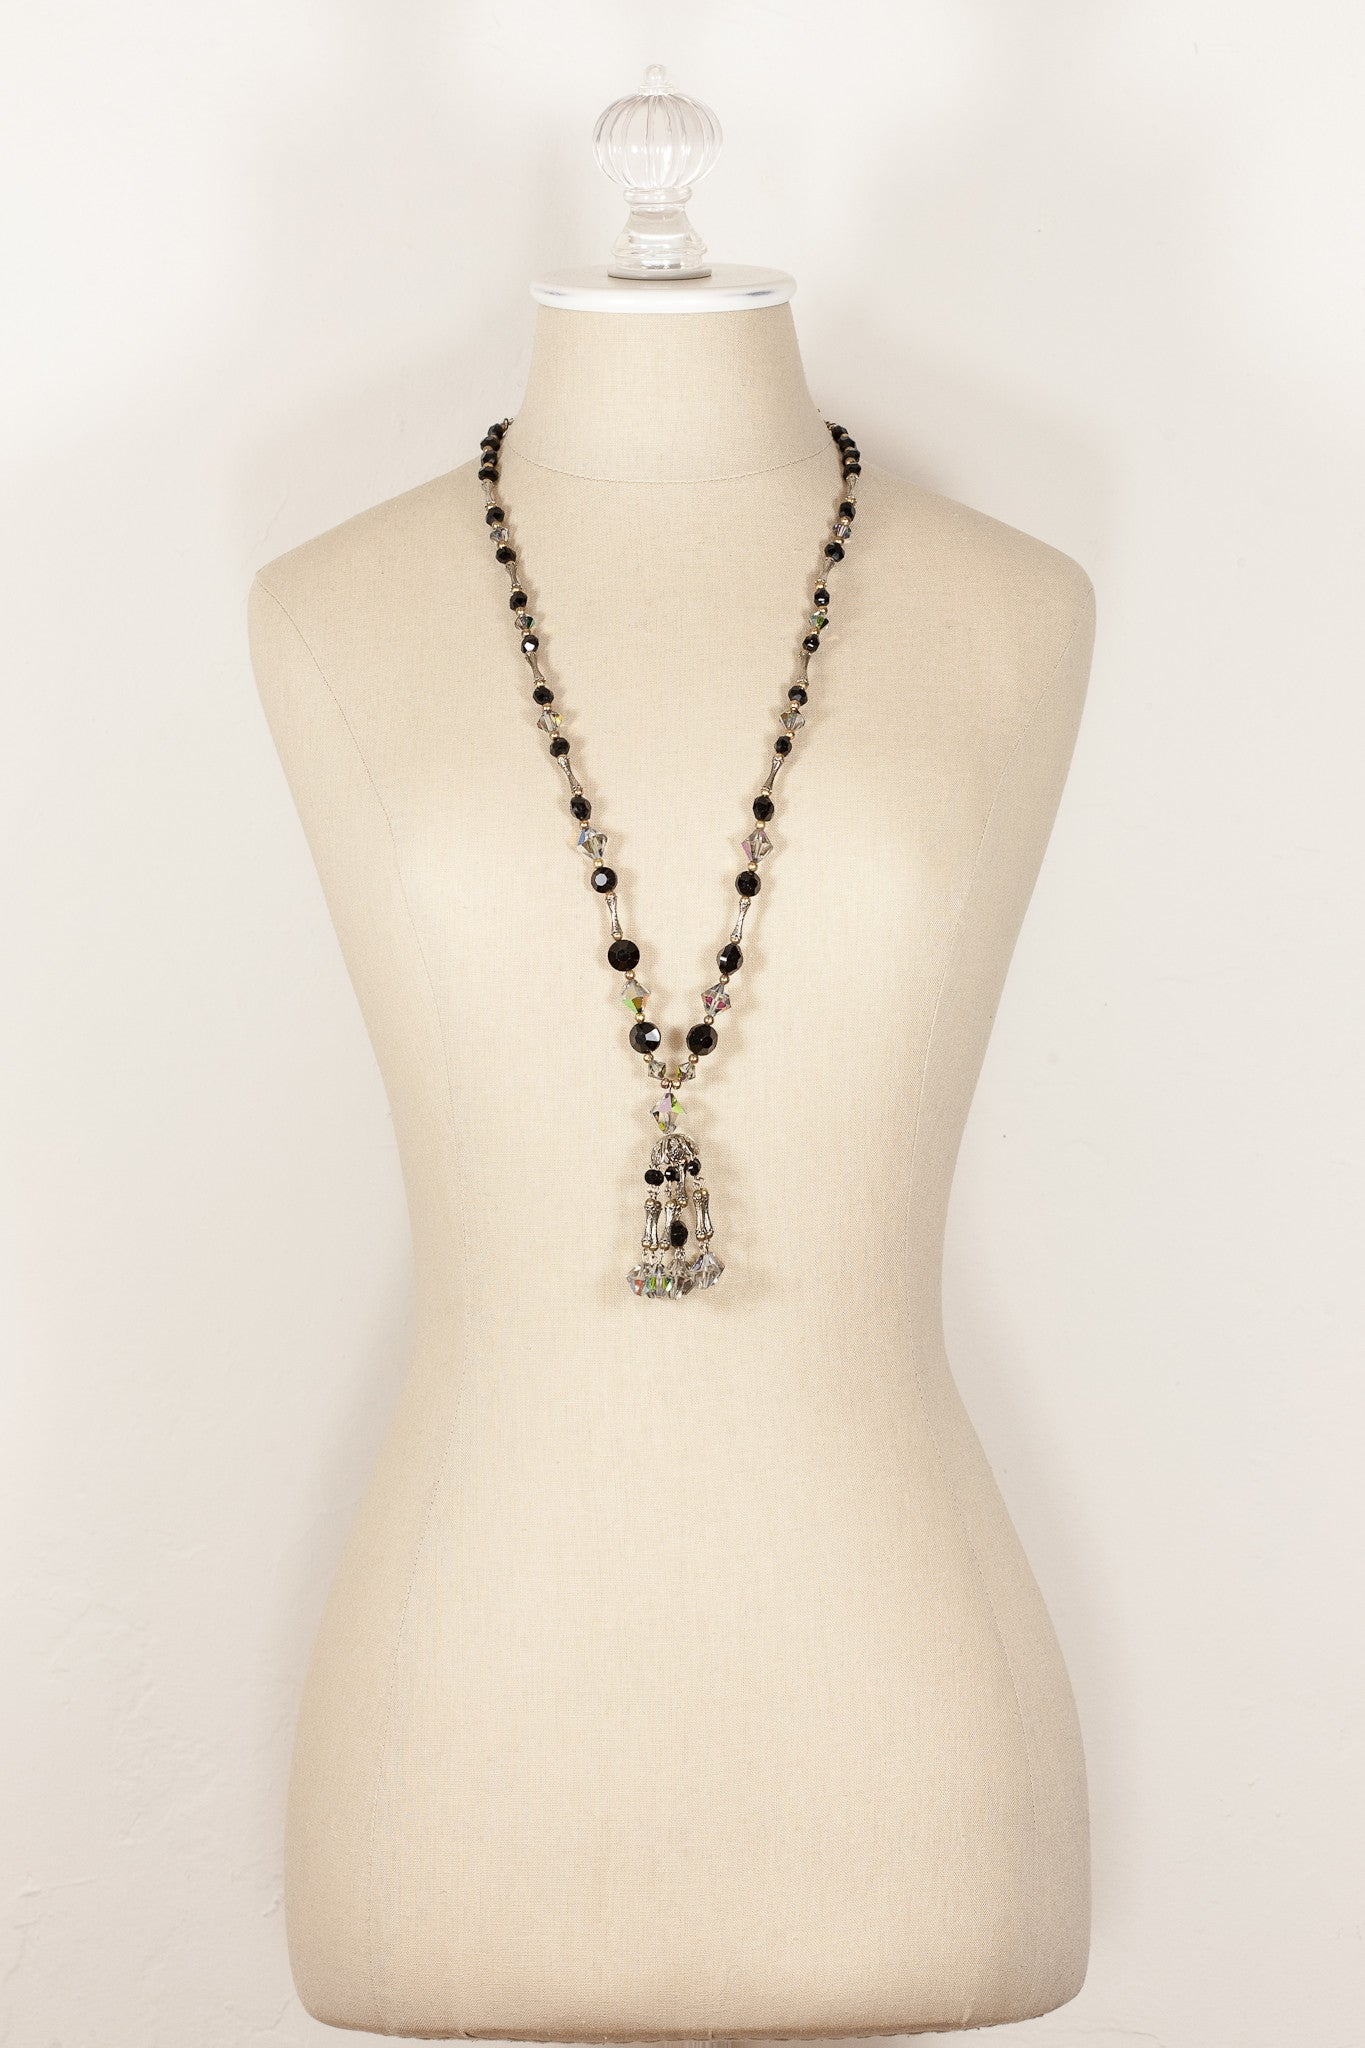 50's__Vintage__Crystal Tassel Necklace